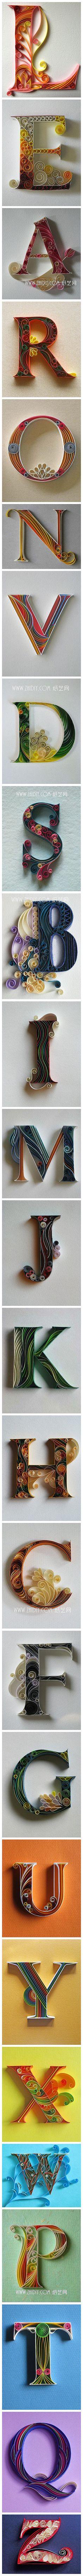 Quilling paper perhaps? DIY origami the derivative paper derivative paper letters appreciate Diy Projects To Try, Crafts To Do, Arts And Crafts, Diy Paper, Paper Art, Paper Crafts, Ideas Paso A Paso, Art Quilling, Quilling Letters